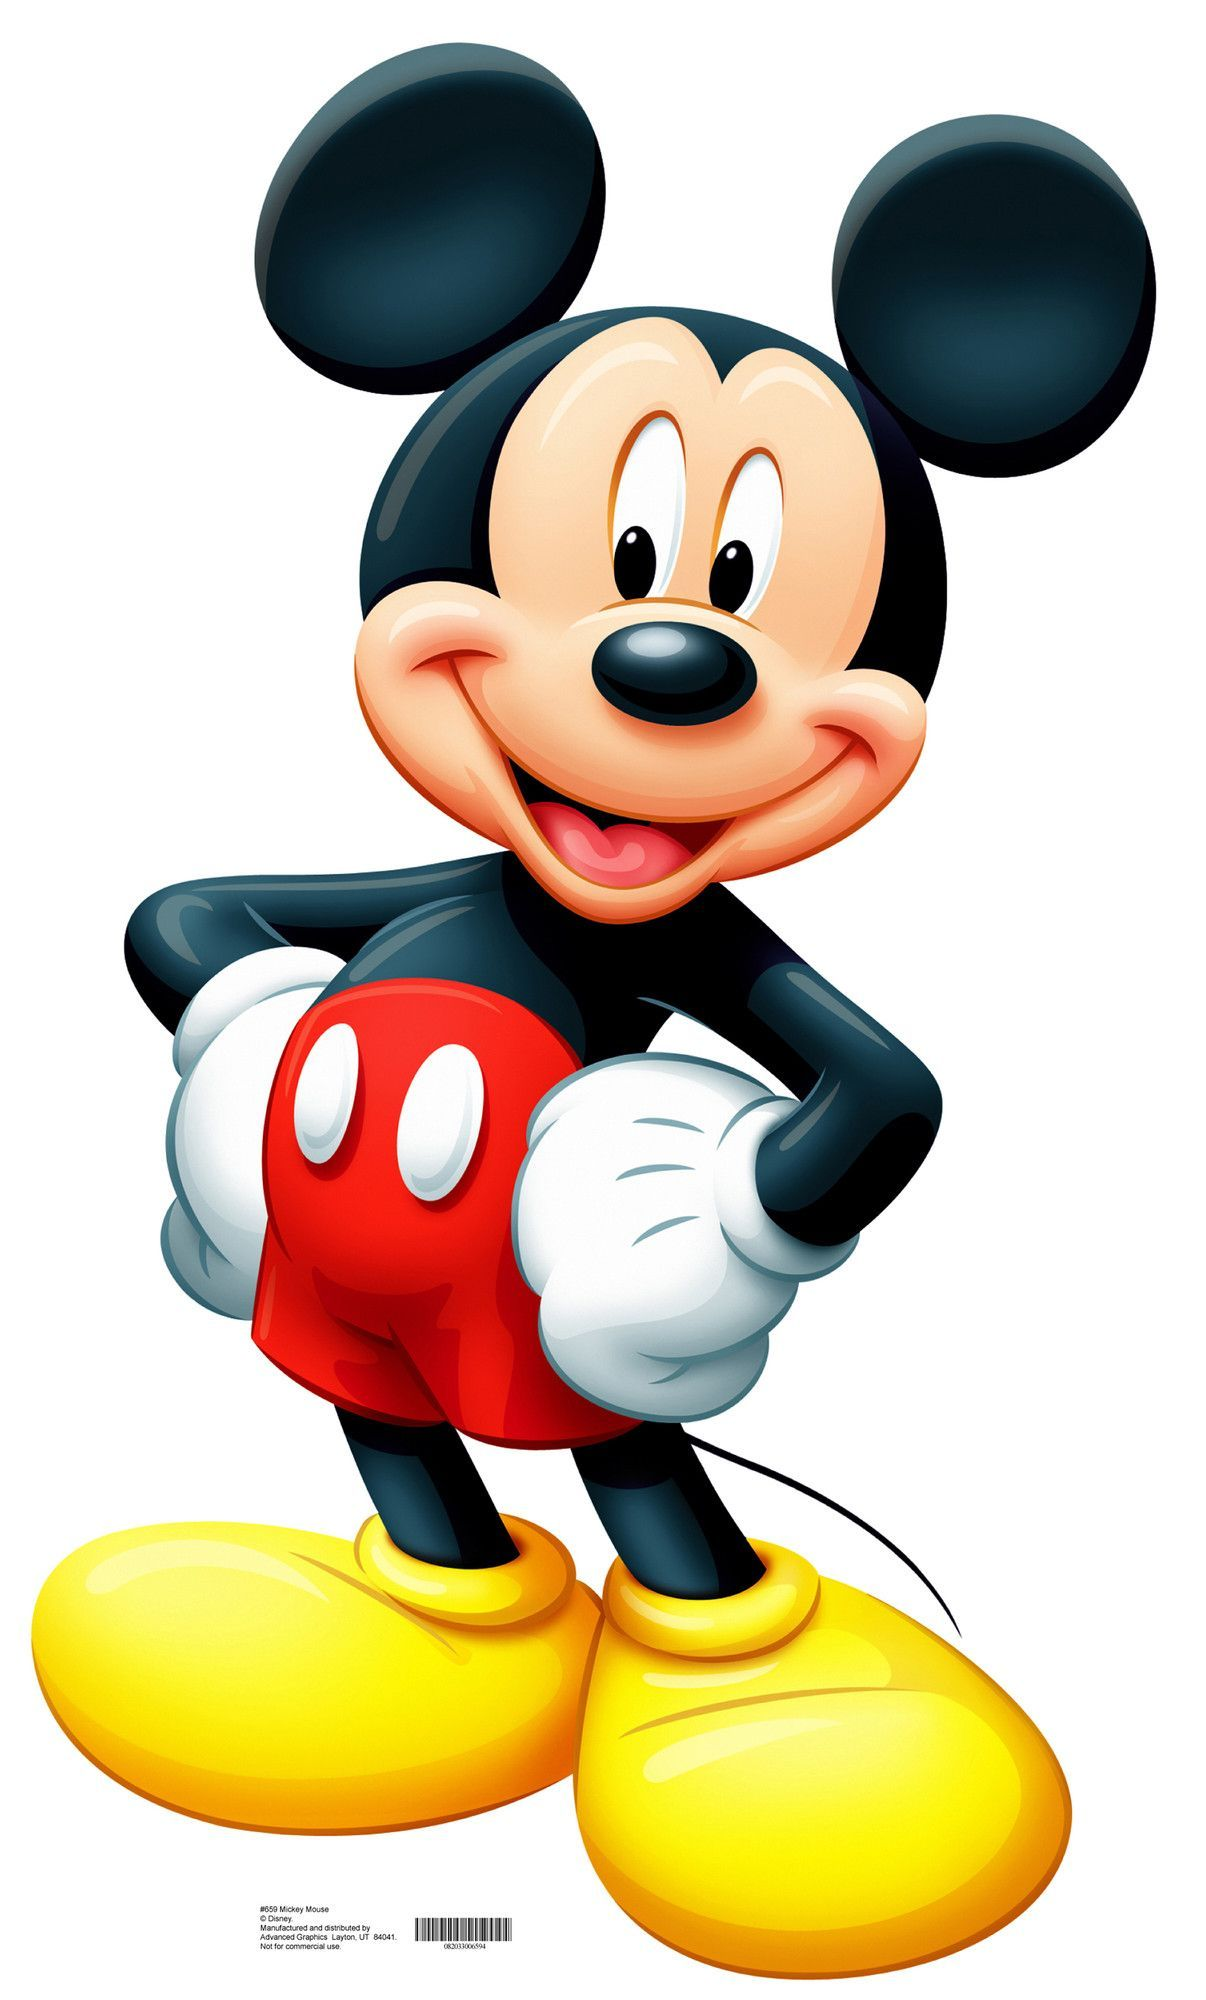 Disney Mickey Mickey Mouse Life Size Cardboard Stand Up Disney Disney Mickey